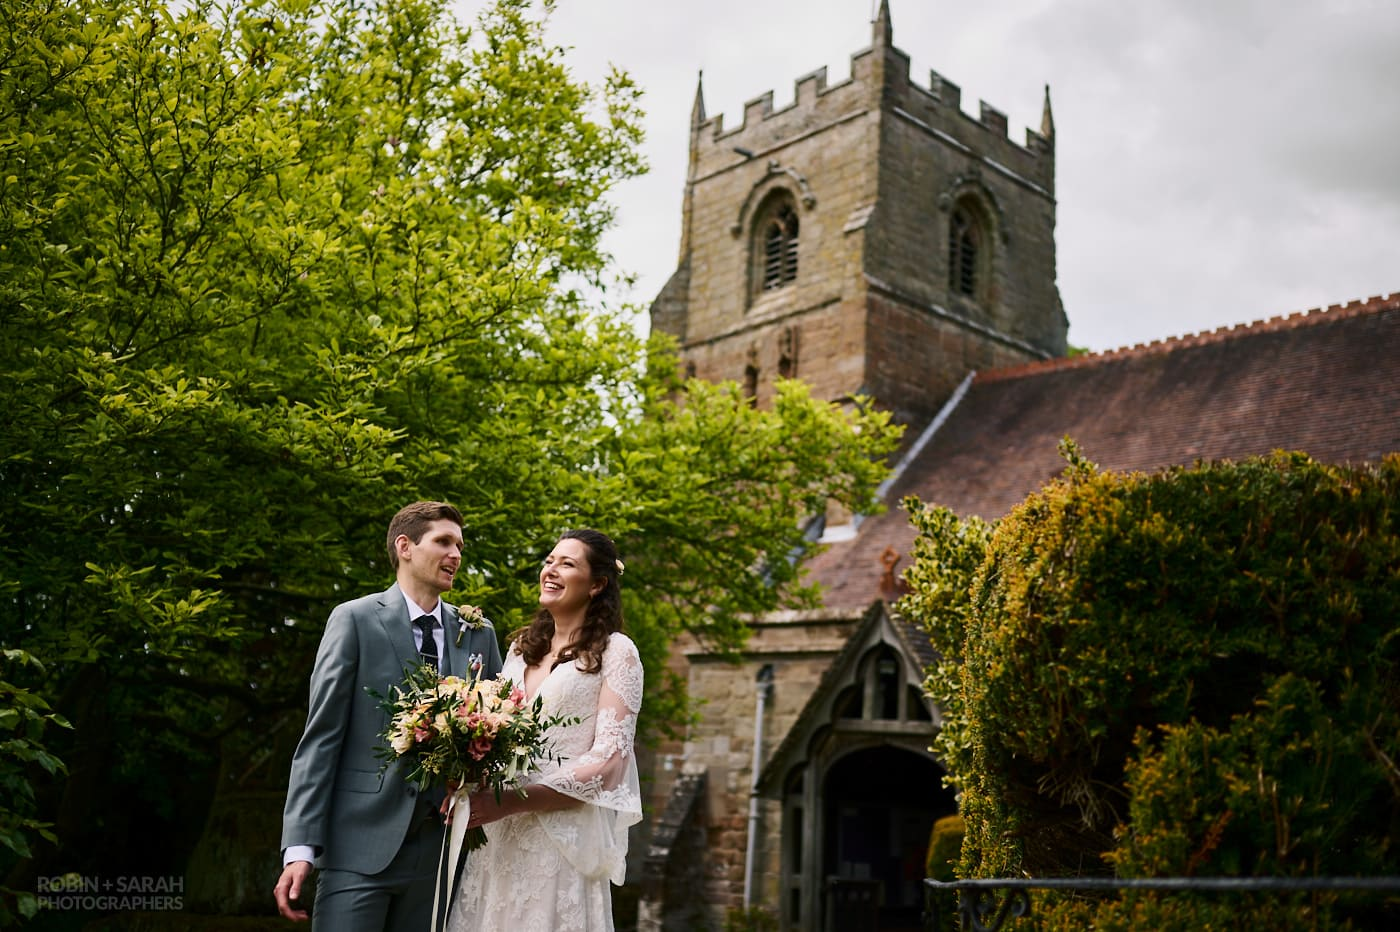 Bride and groom relax together in front of St Leonard's church in Beoley, Redditch